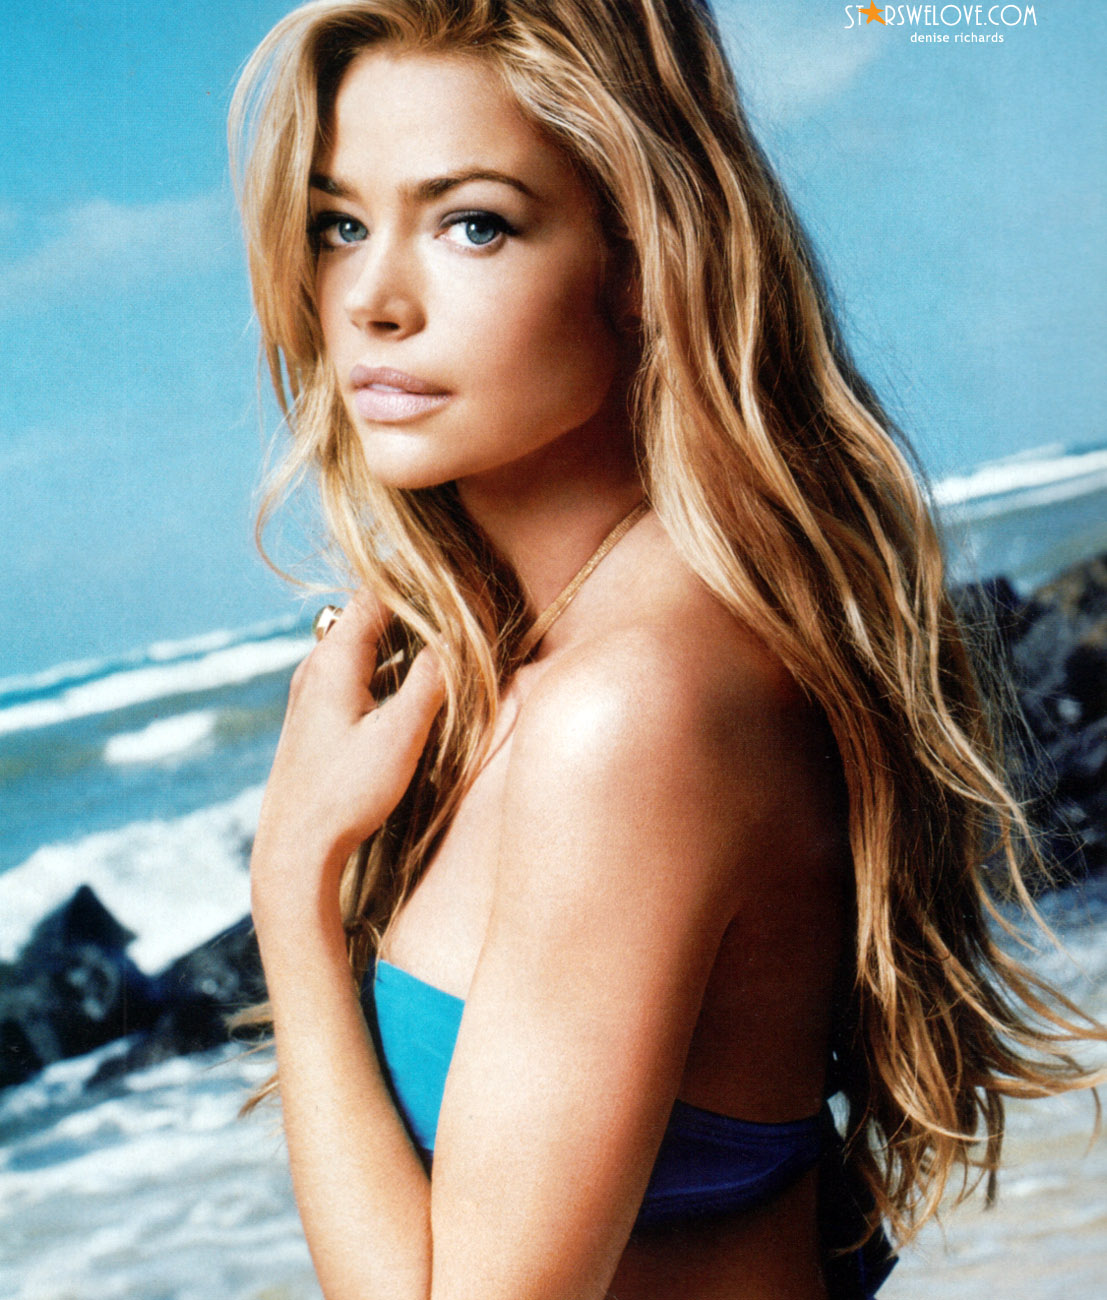 Denise Richards photo (denise_richards005, 1107 x 1300 pixels, 333 kB)